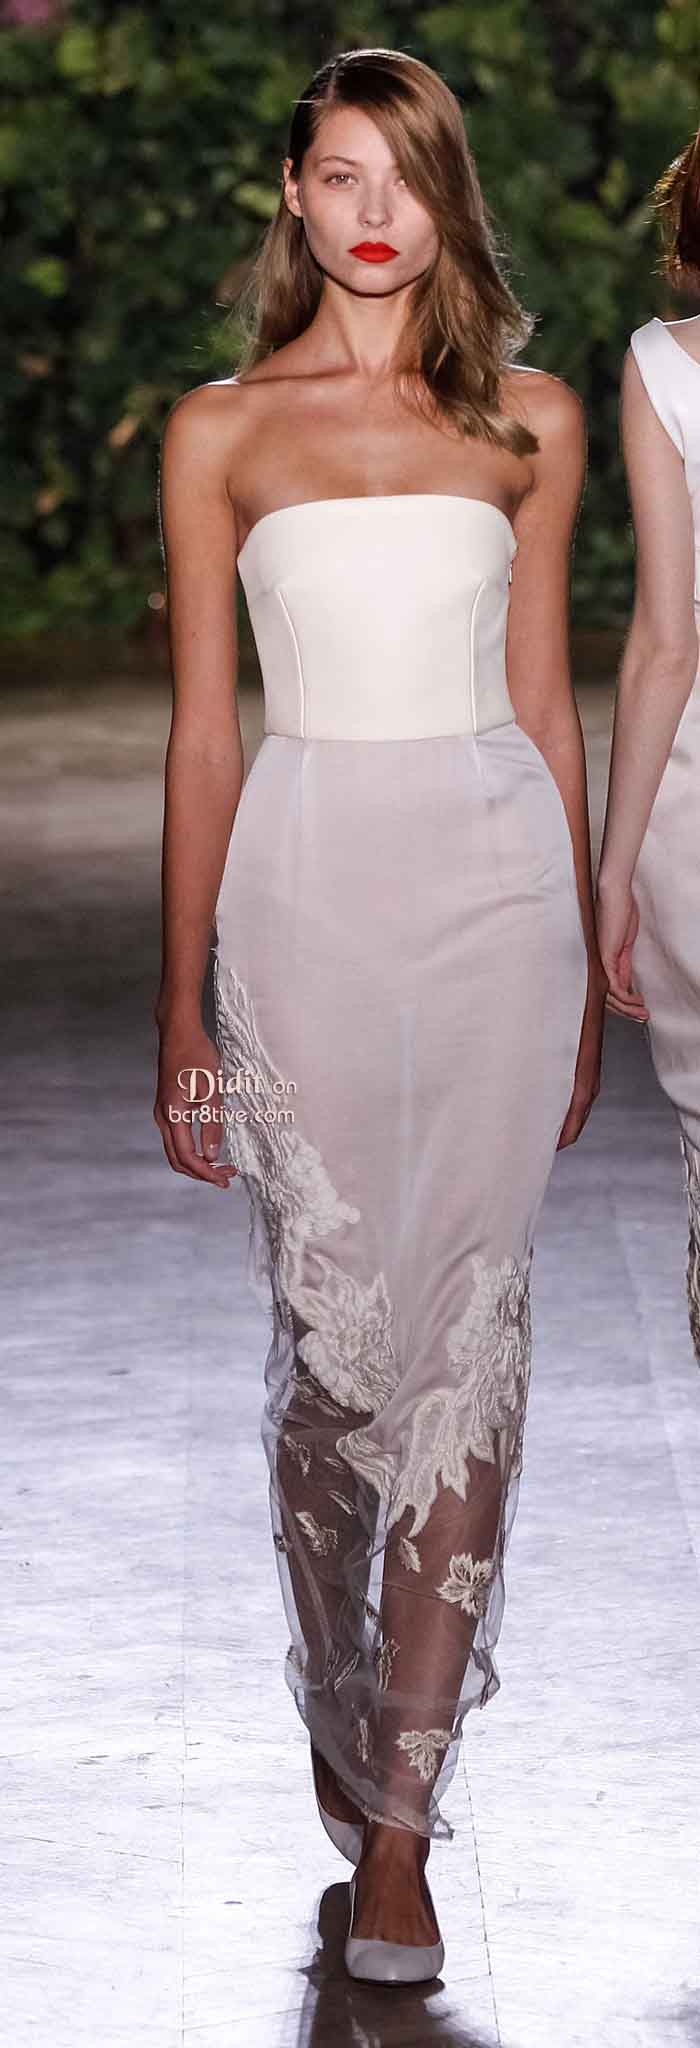 Didit Hediprasetyo Spring 2014 Haute Couture